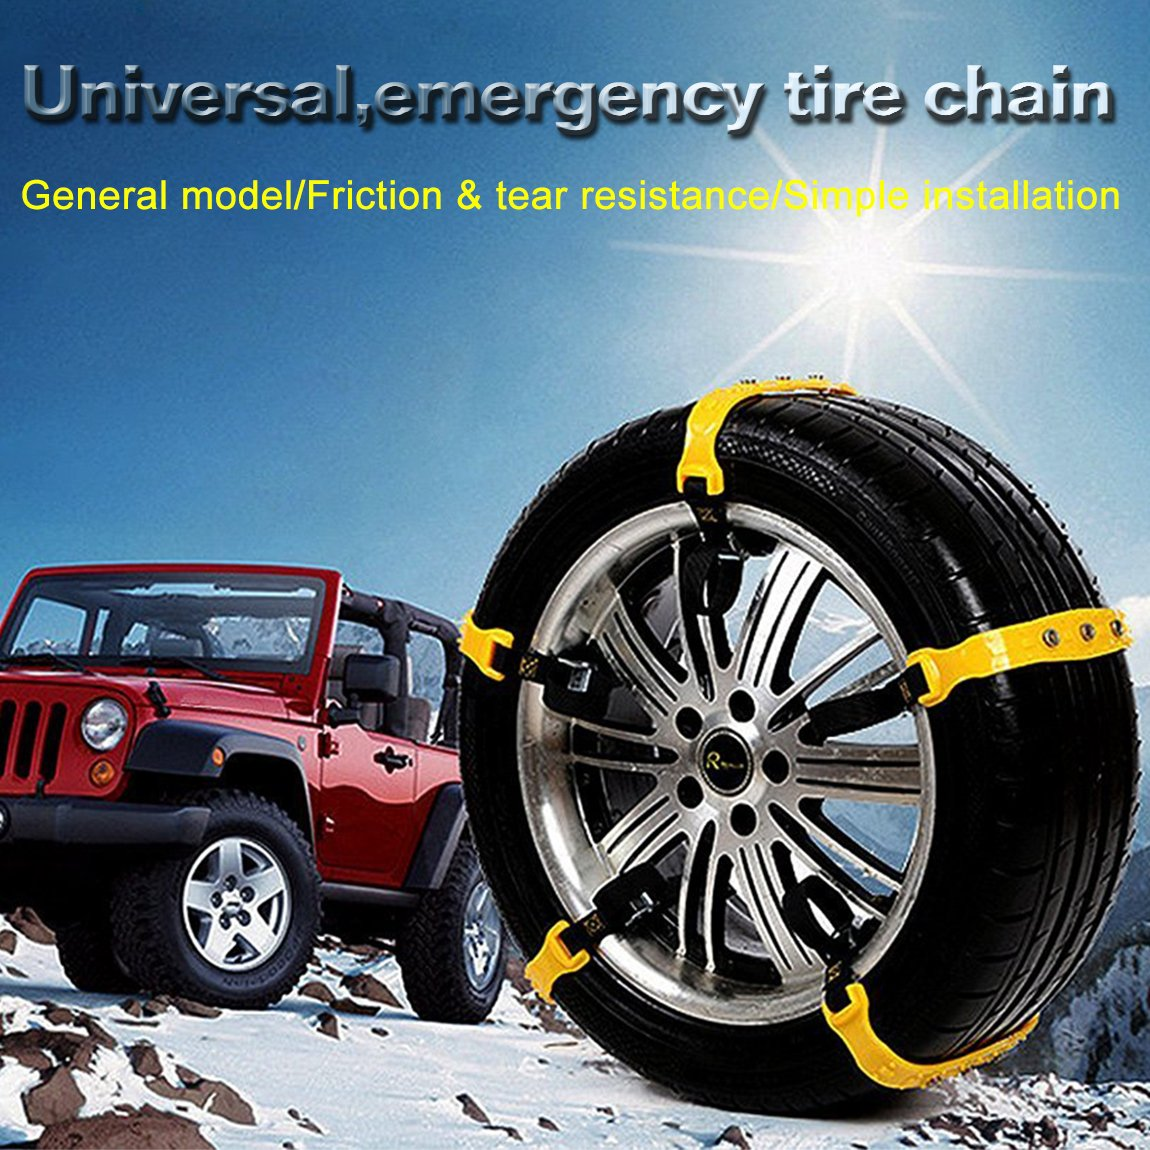 Set of 4 Pieces Besteamer Snow Chains Car Anti Slip Tire Chains Adjustable Anti-Skid Chains Car Tire Snow Chains Fits for Most Car//SUV//Truck-Set of 10 Width 185-295mm//7.2-11.6